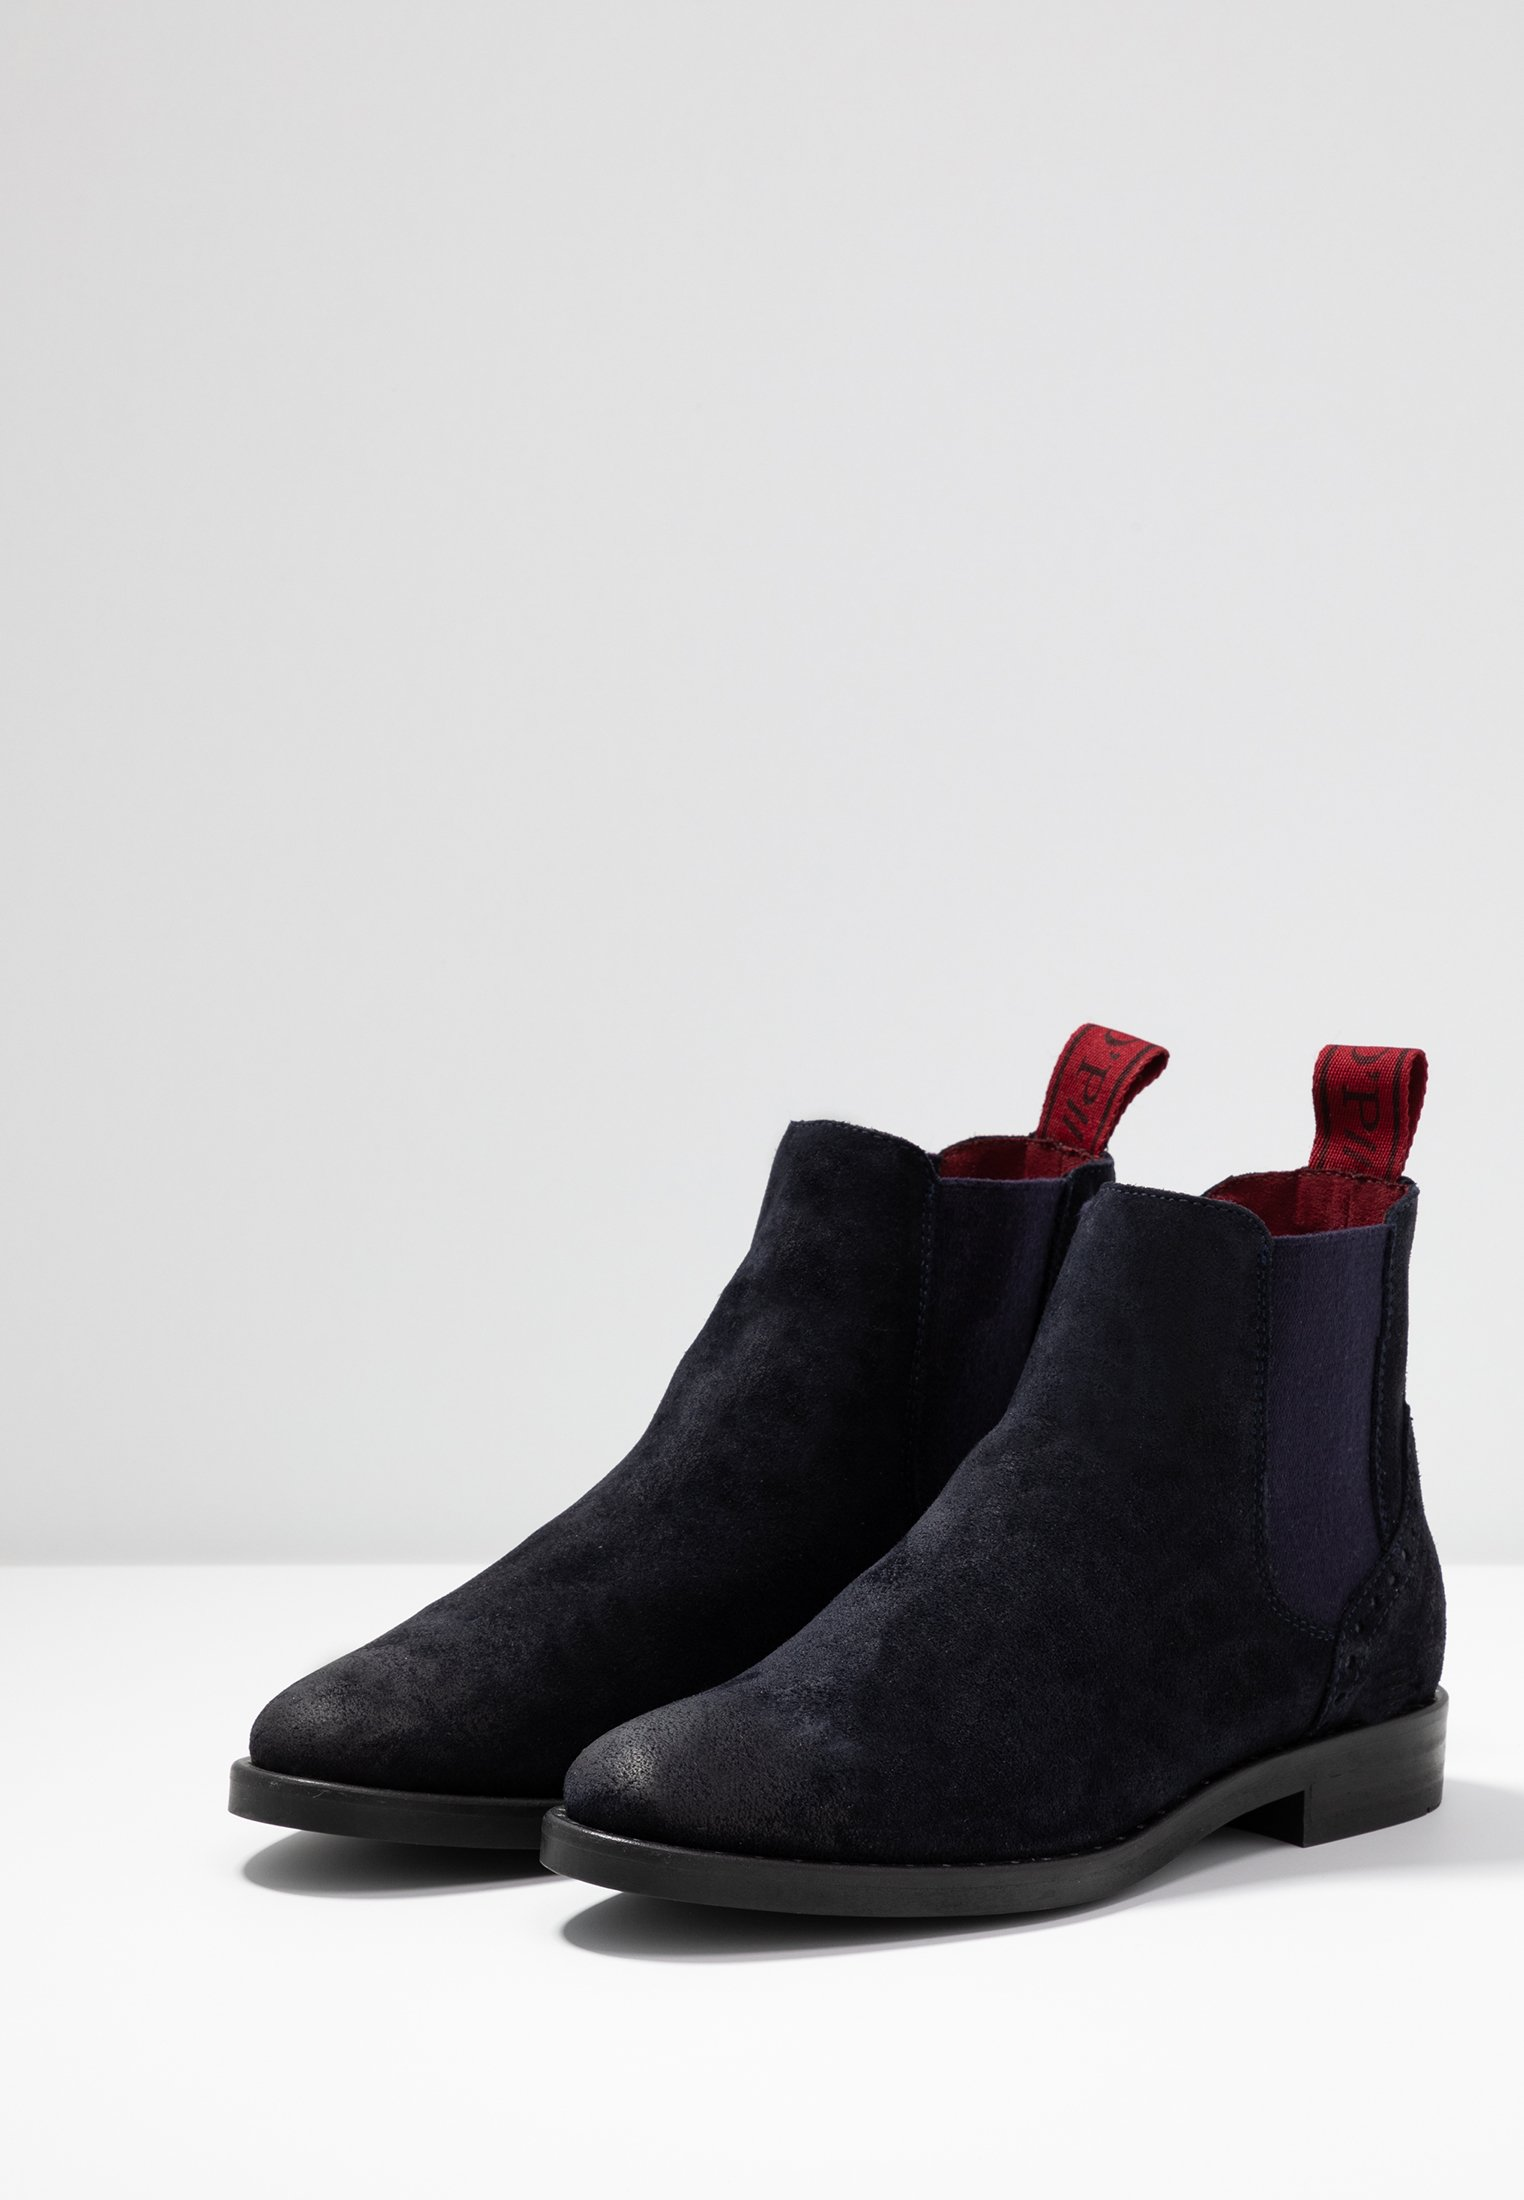 Marc O'polo Ankle Boot - Navy Black Friday